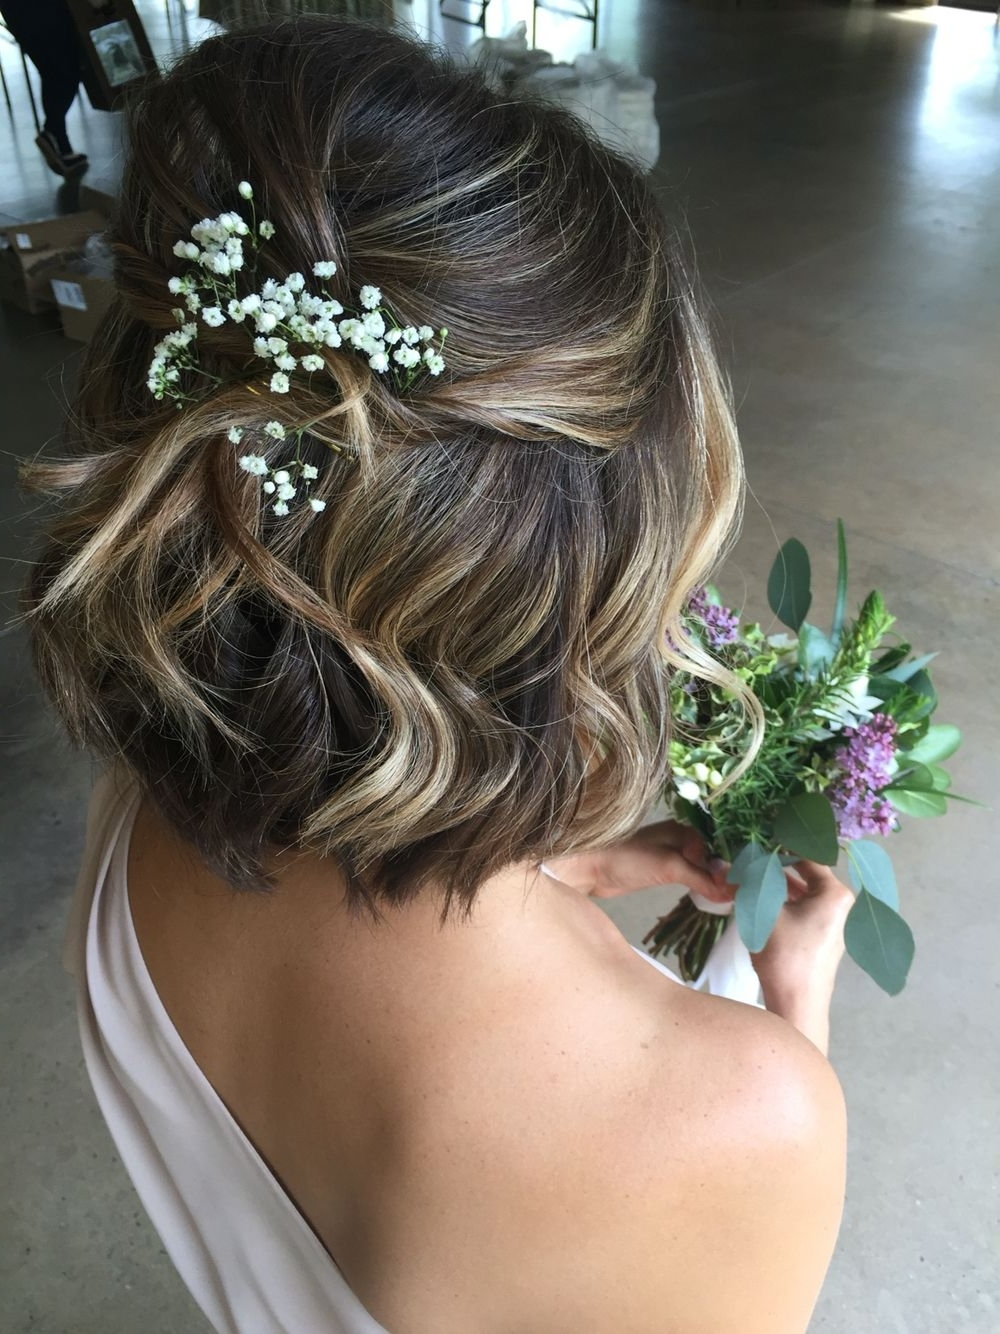 Short Hairstyles For Wedding Party Bride Mother Of The Hats Black Throughout Newest Wedding Hairstyles For Short Hair For Bridesmaids (Gallery 7 of 15)